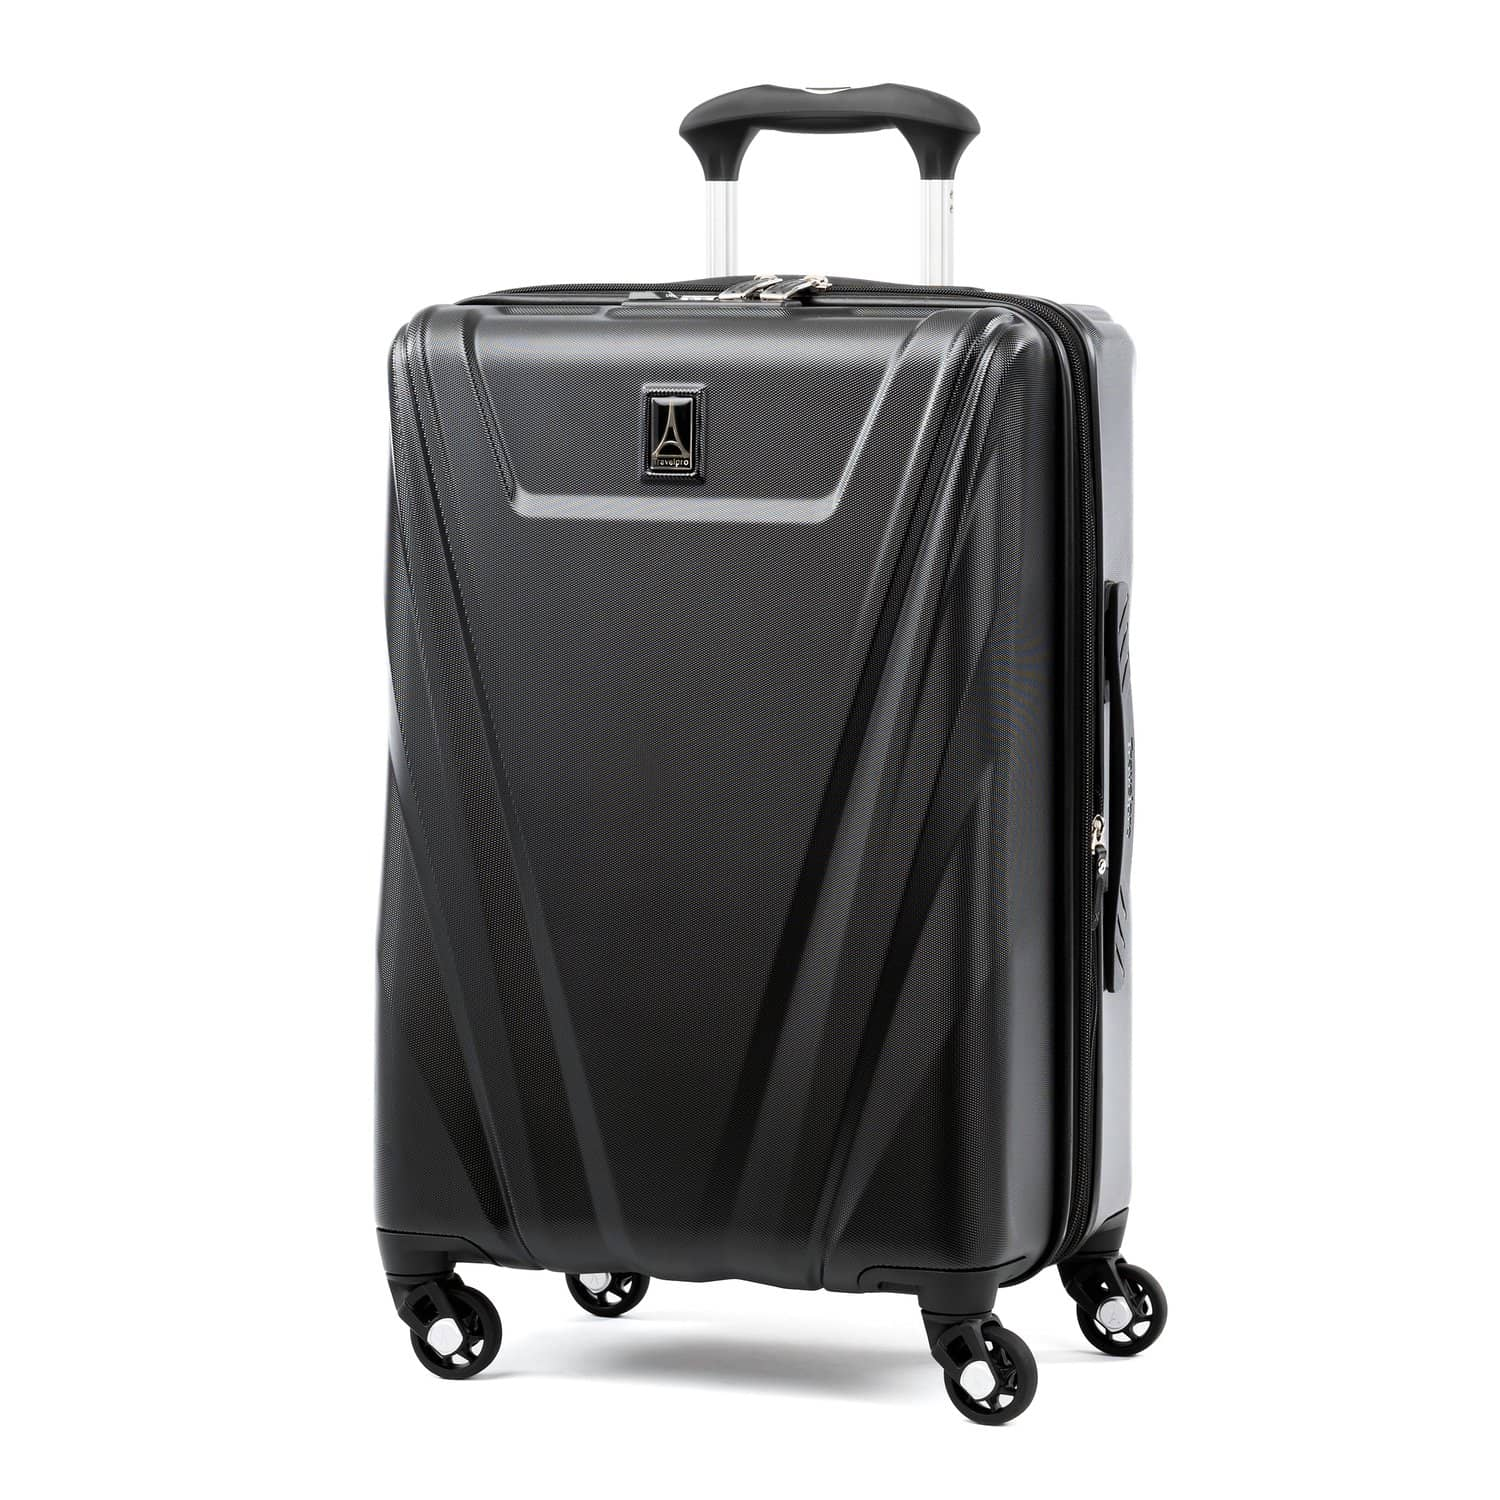 Travelpro Maxlite® 5 Expandable Carry-on Hardside Spinner BLACK